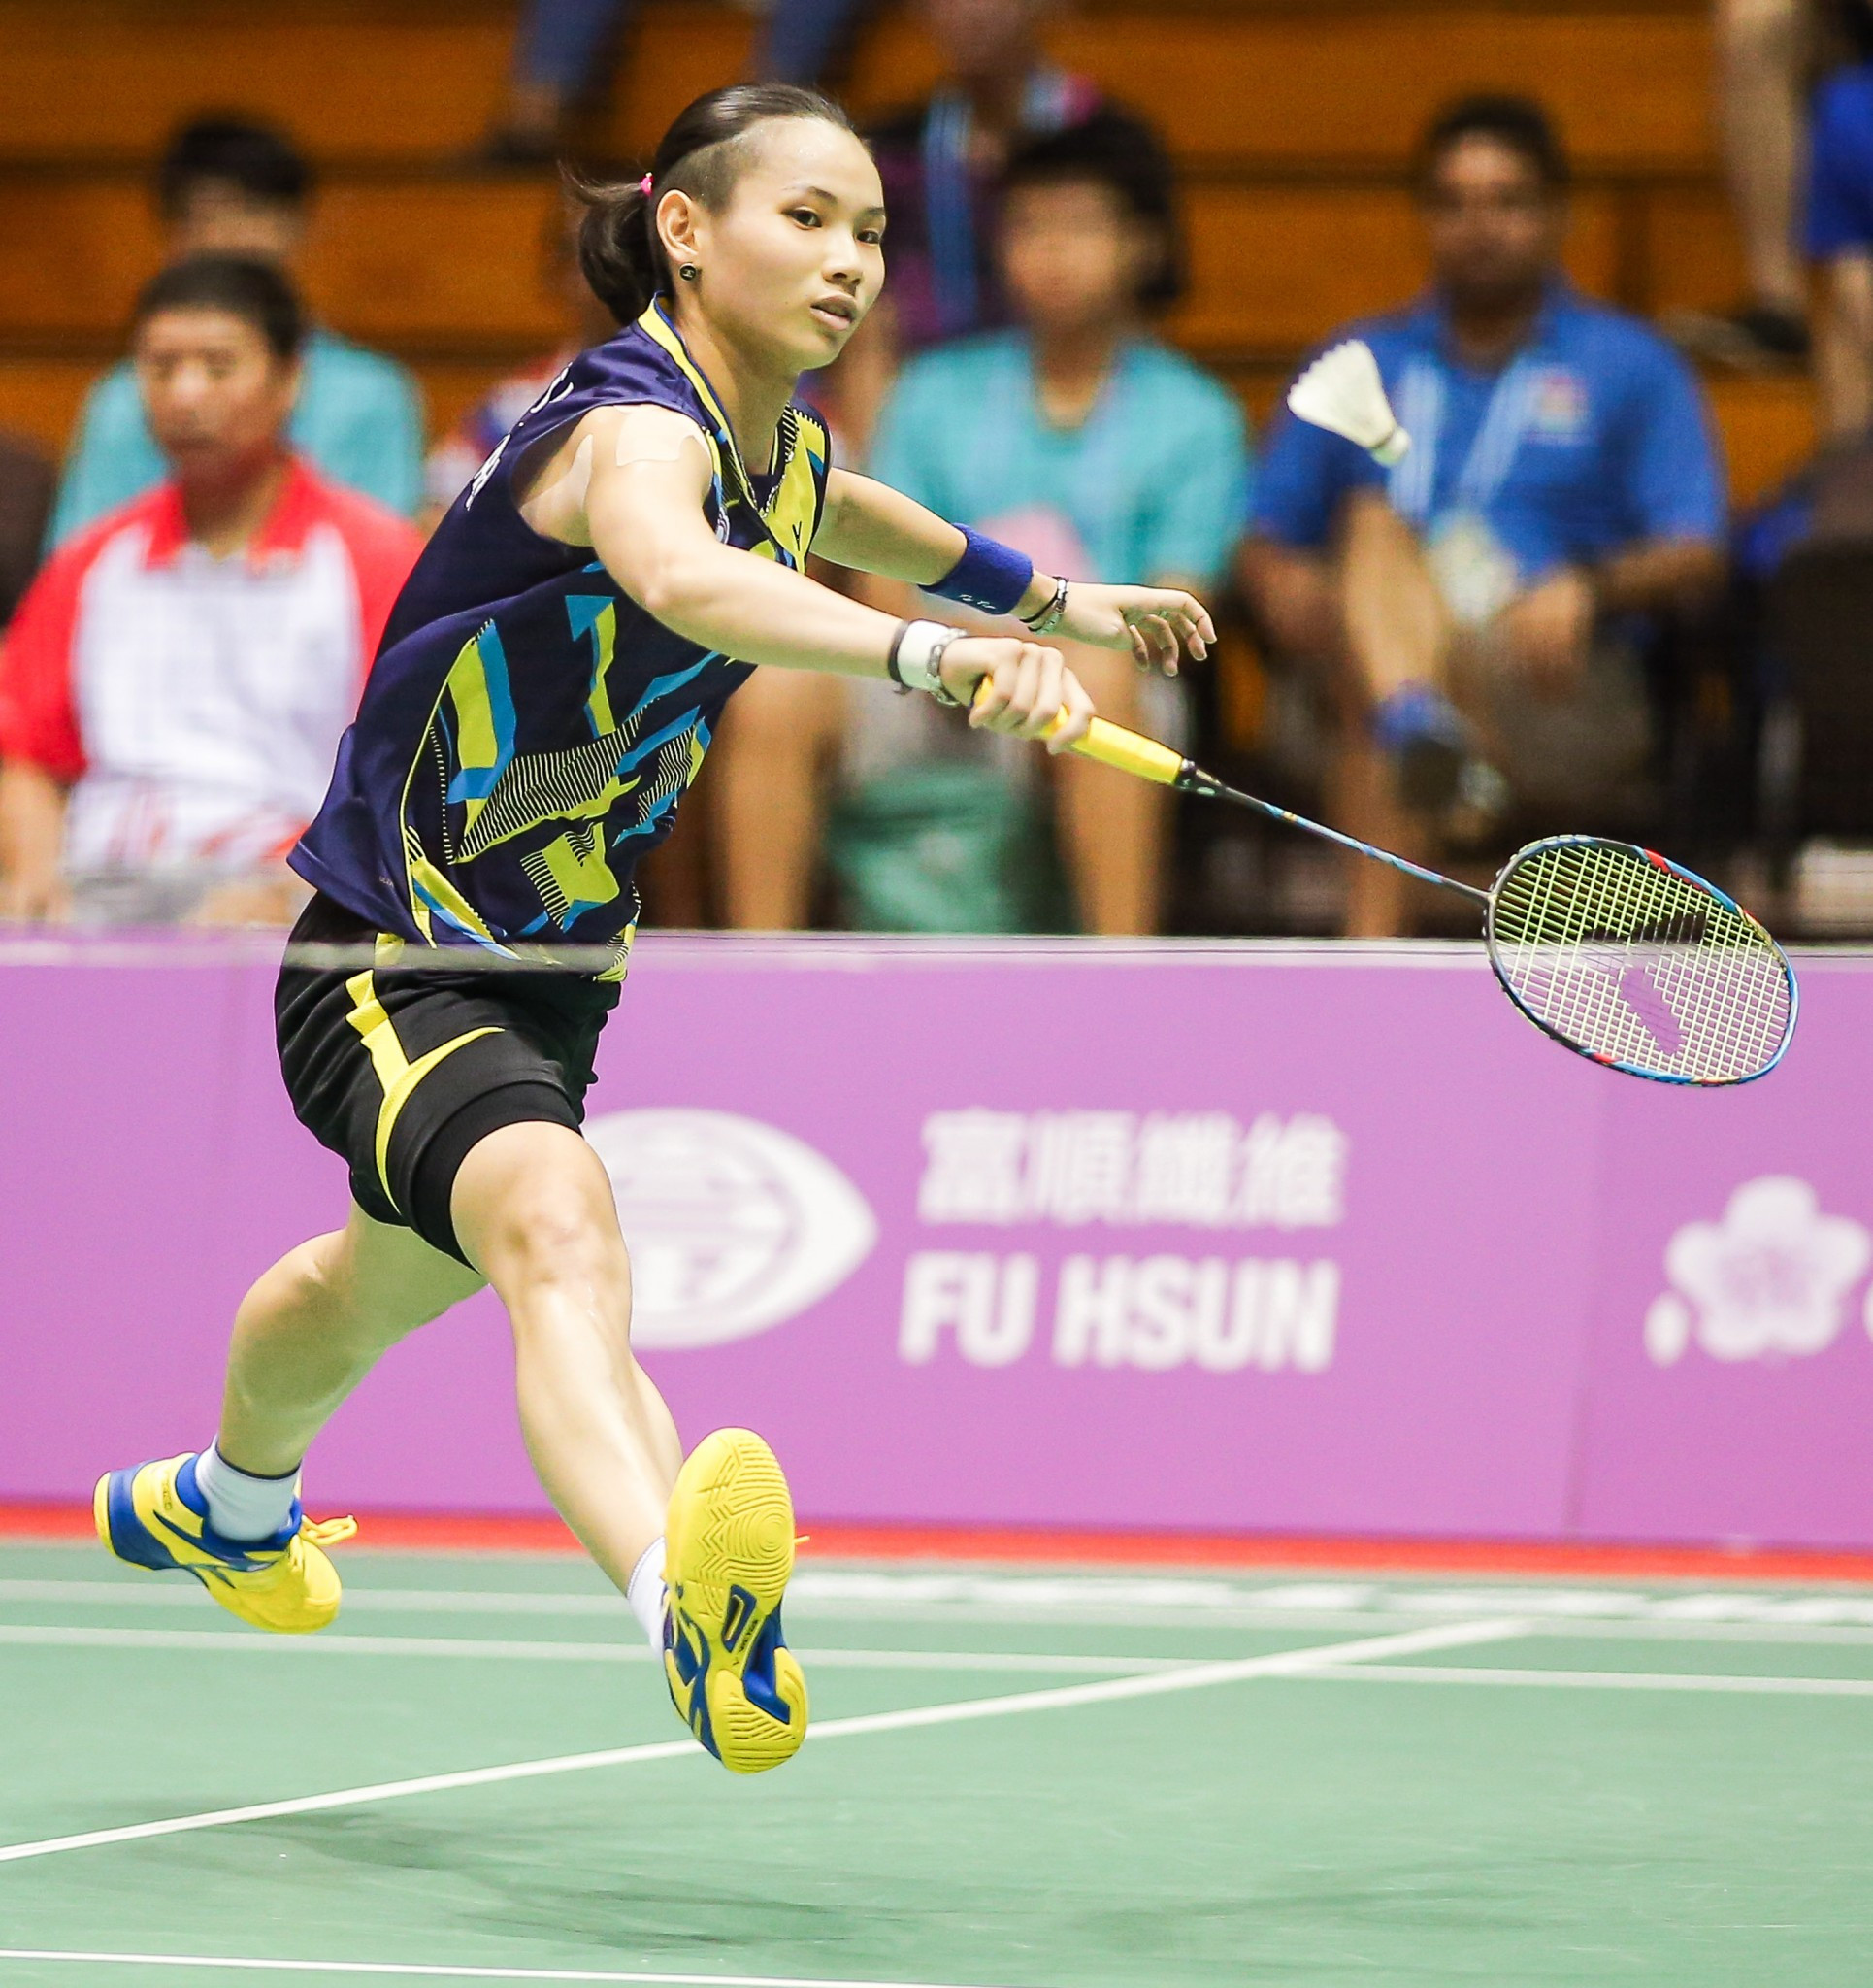 Hosts dominate badminton finals on penultimate day of Taipei 2017